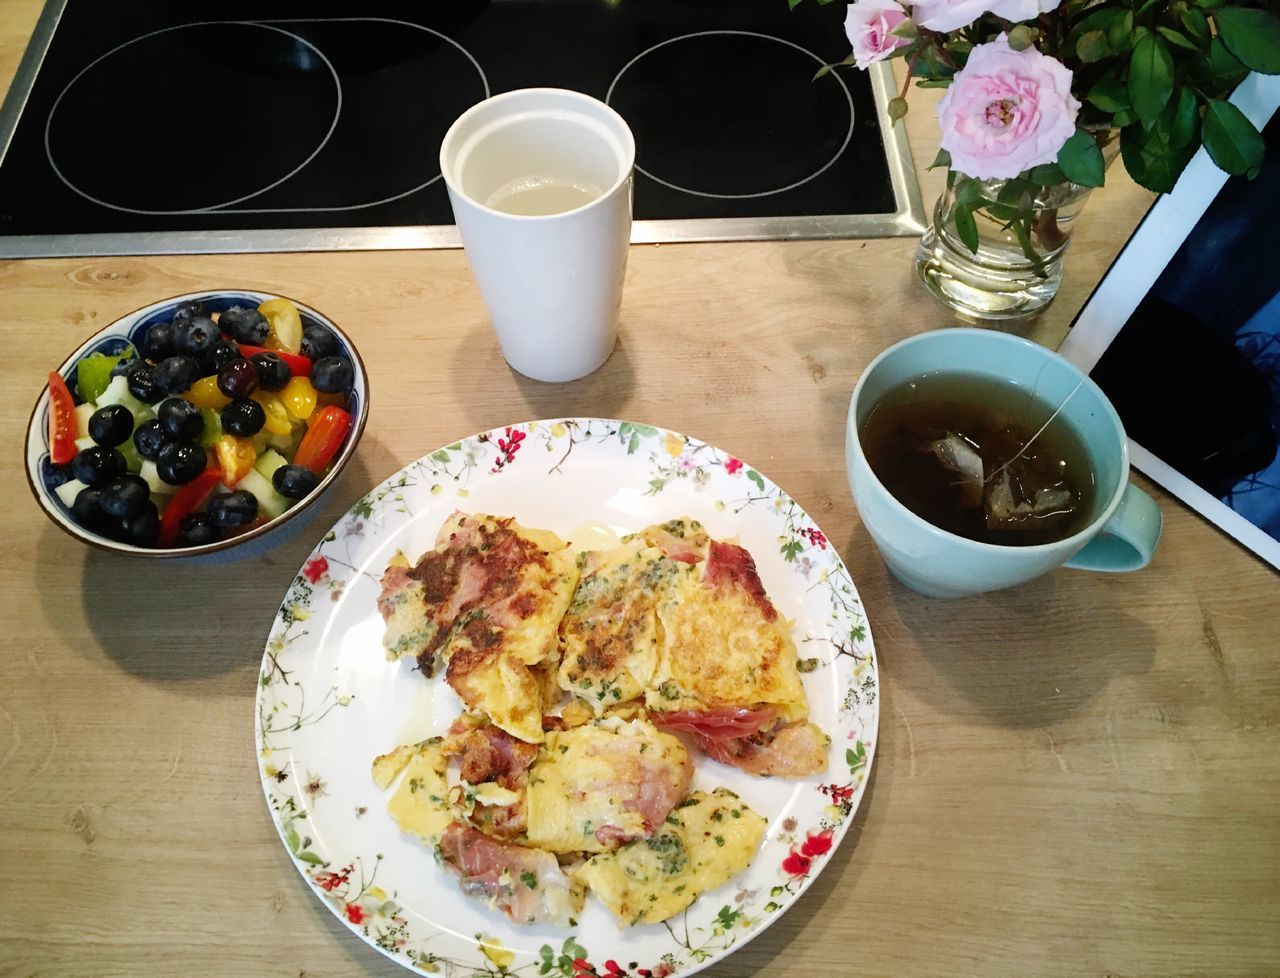 healthy breakfast Omelette Scrambledeggs Eggs... Eggs For Breakfast Food Food And Drink Ready-to-eat Plate High Angle View Tea Healthy Eating Frühstück No People Breakfast Healthy Food Blueberry Scrambled Eggs Healthy Lifestyle Meal Protein